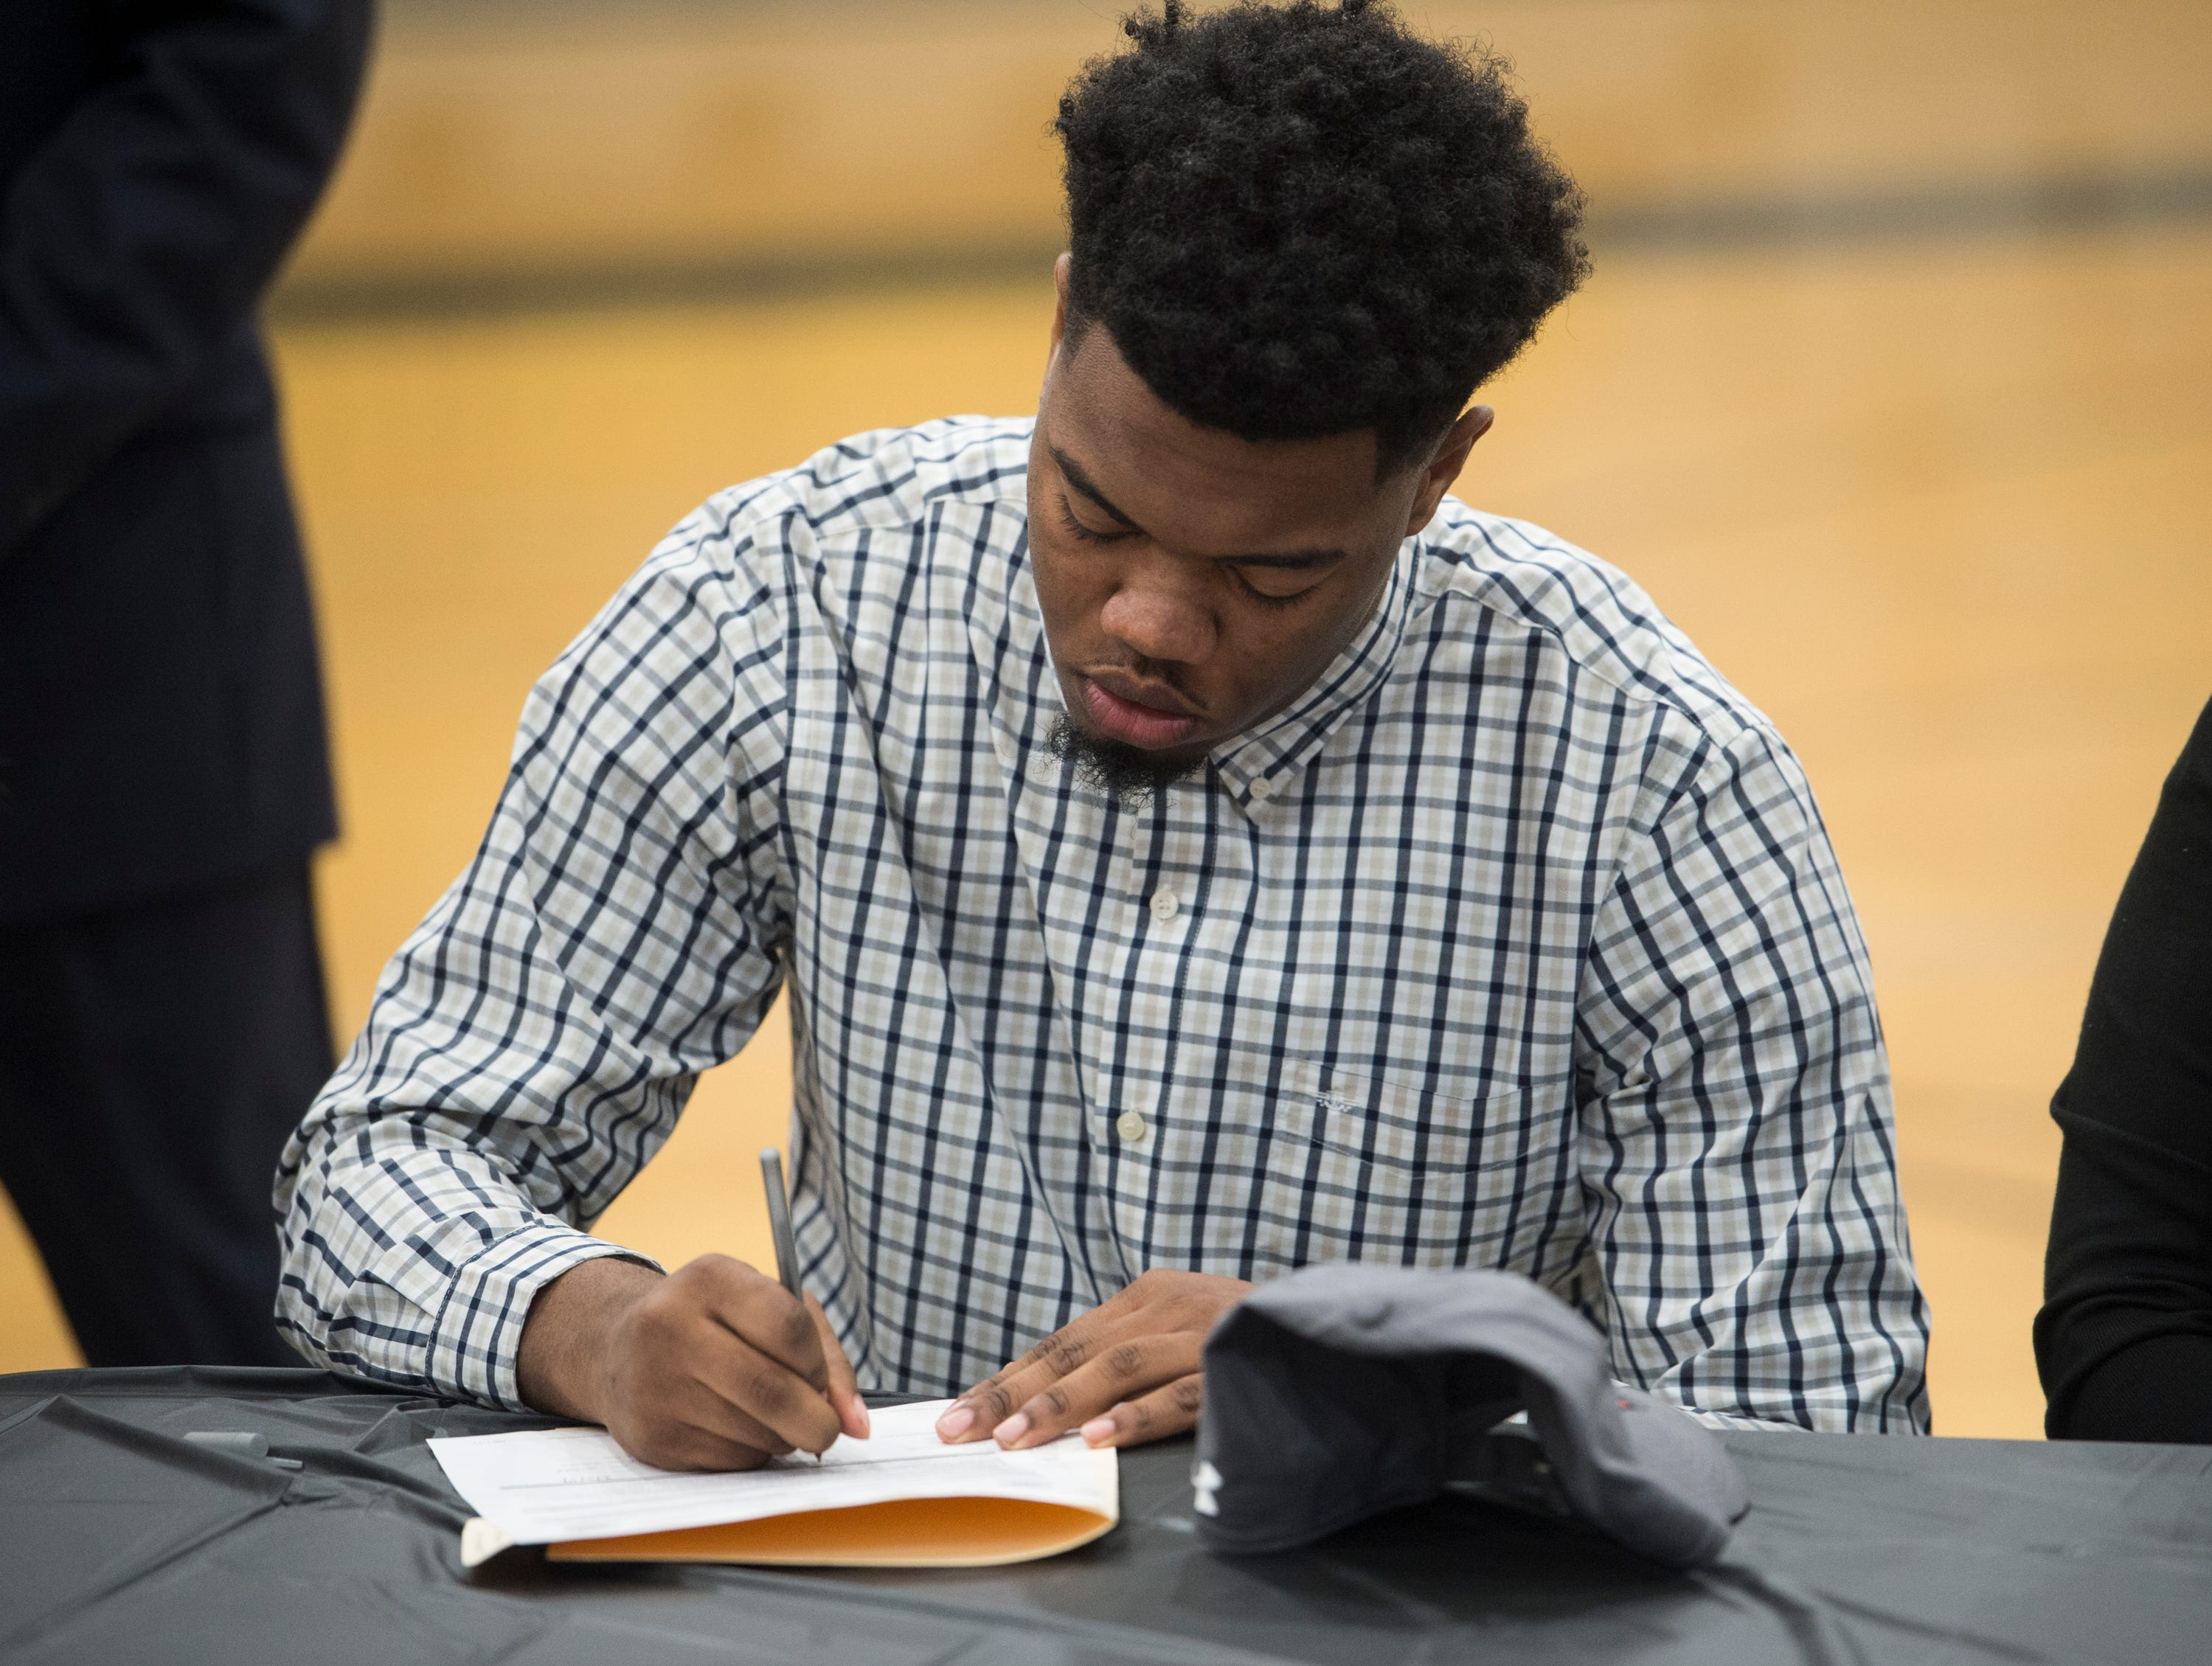 Darren Nolen signs his letter of intent to Hutchinson Community College during signing day at Wetumpka High School in Wetumpka, Ala., on Wednesday, Feb. 6, 2019.